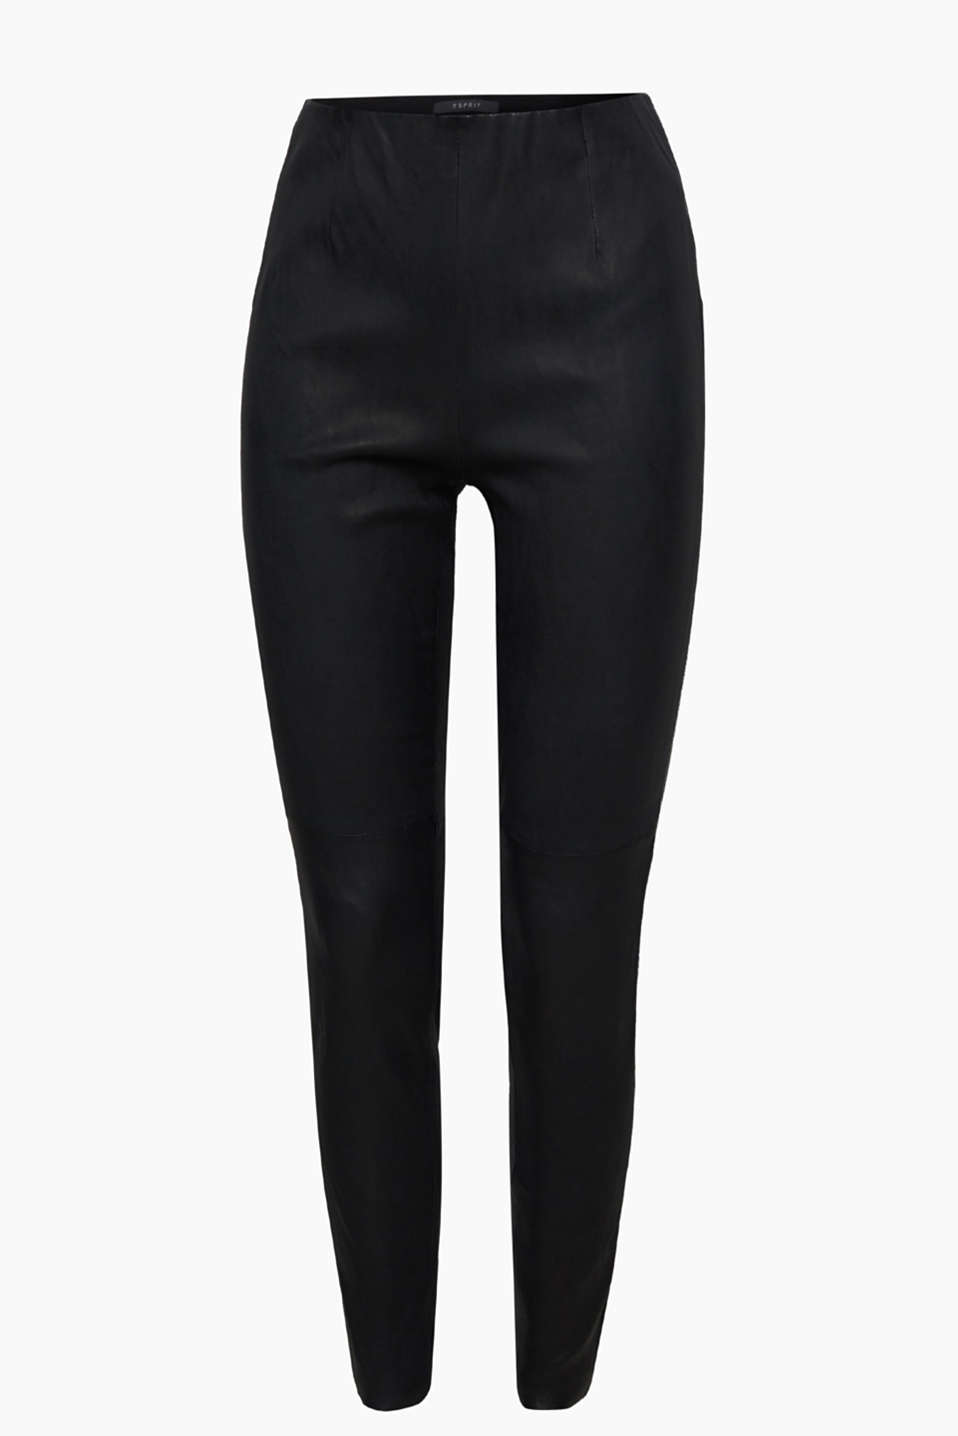 First-class fashion fave: exquisite lamb leather leggings with an elasticated waistband and unfinished hems